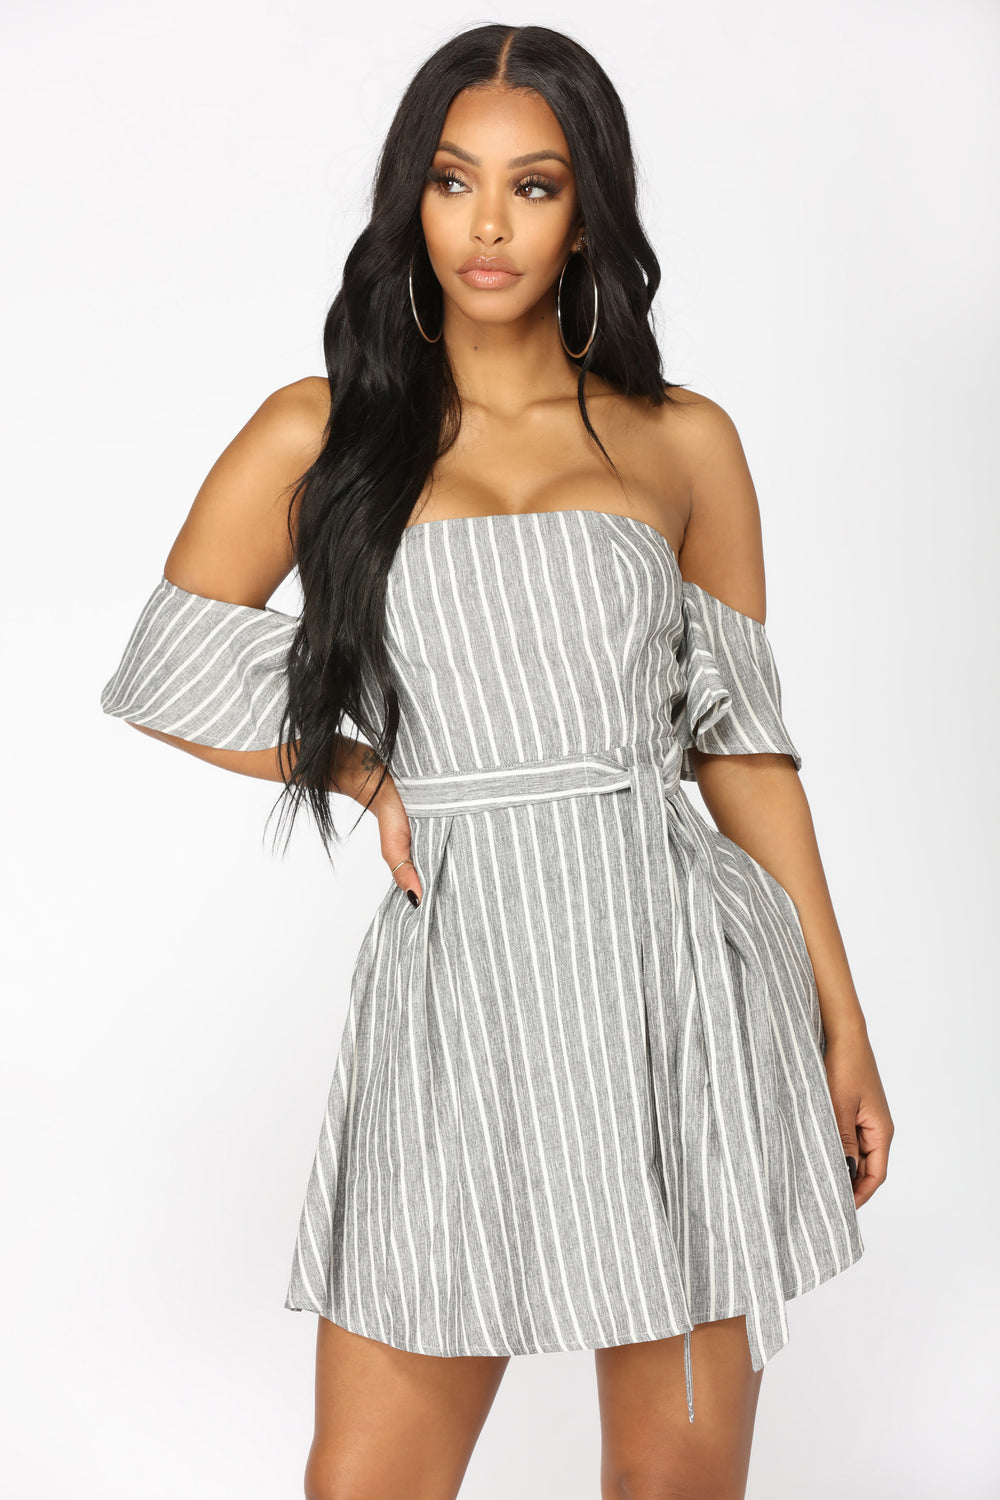 Underlined Stripe Dress - Grey